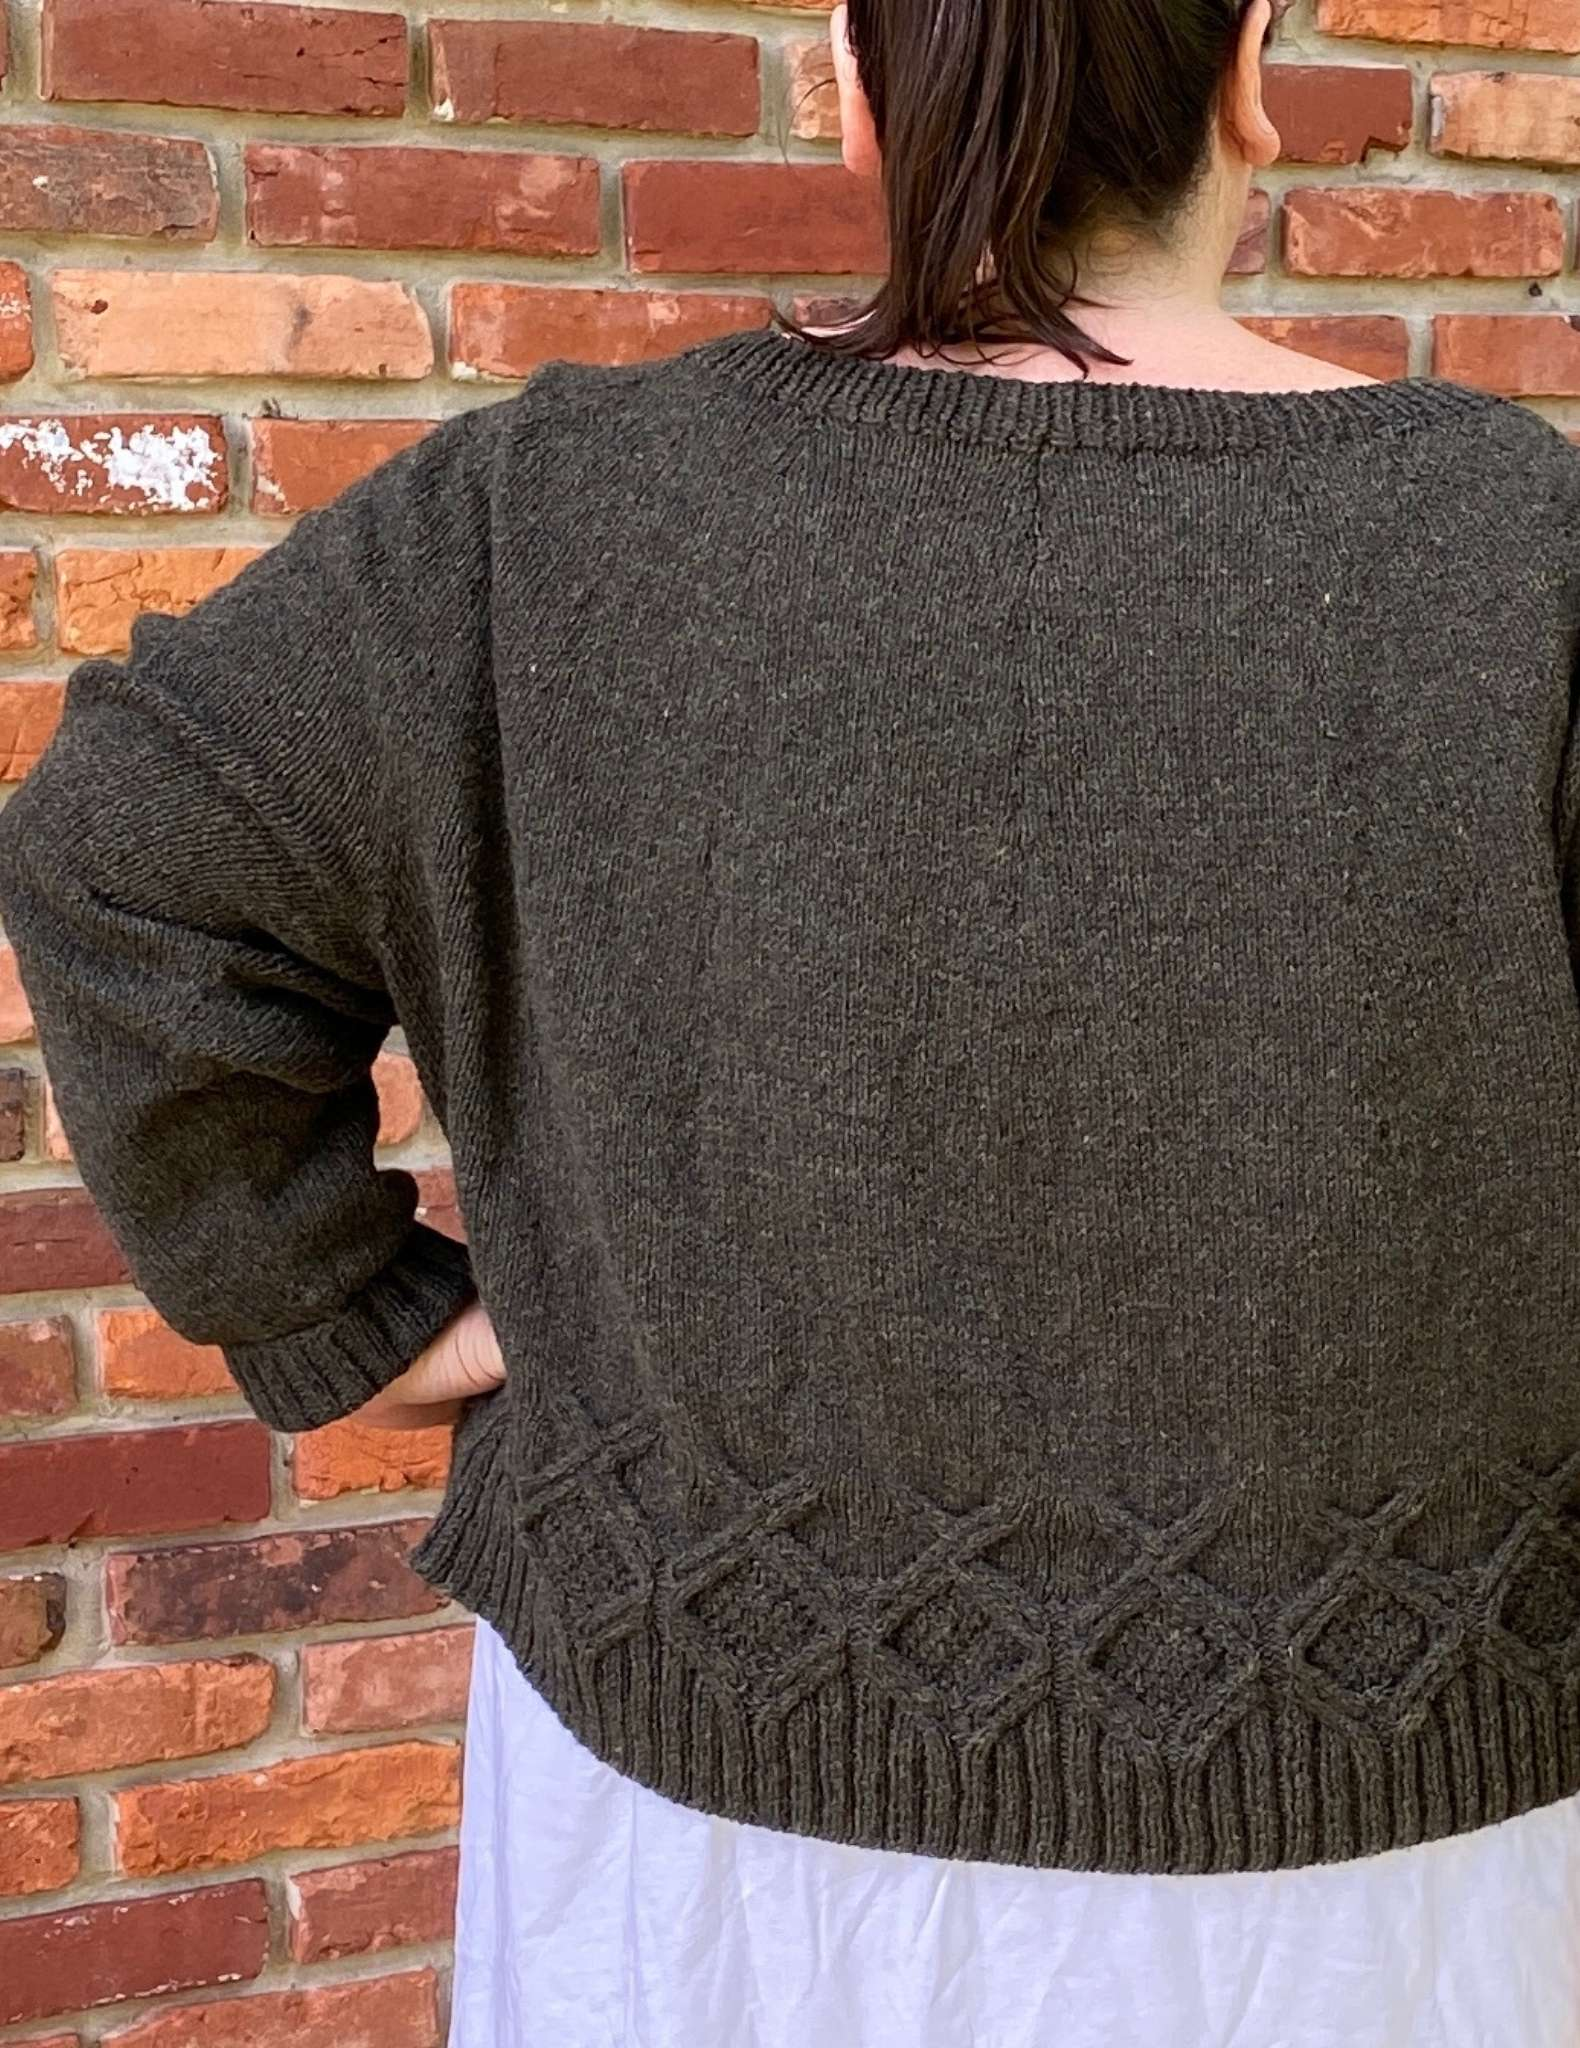 the back of a brown sweater, worn by a model standing in front of a brick wall